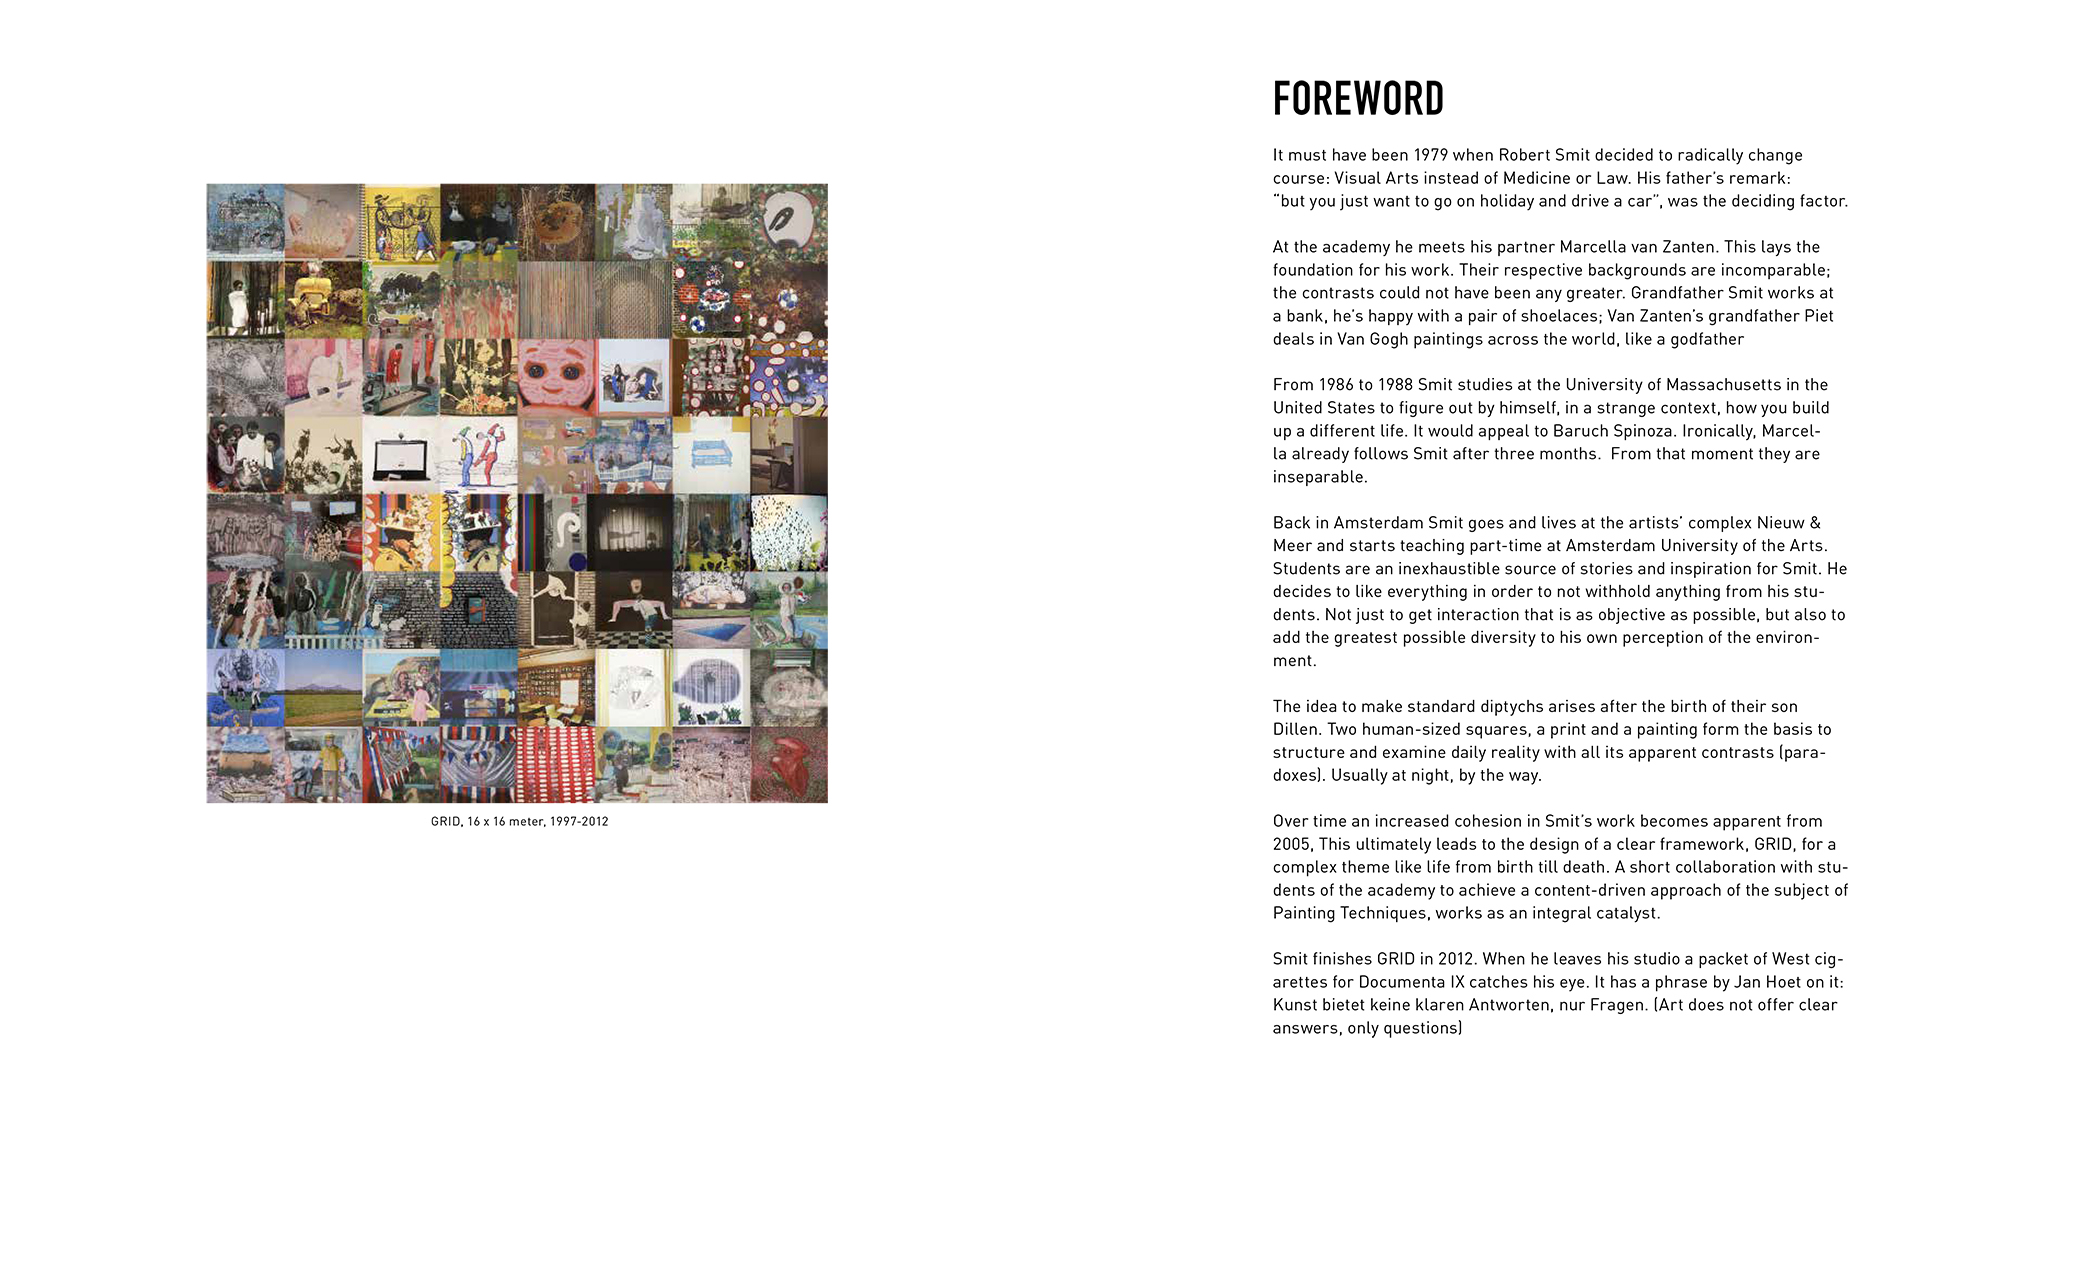 Robert_Smit_GRID_foreword_page